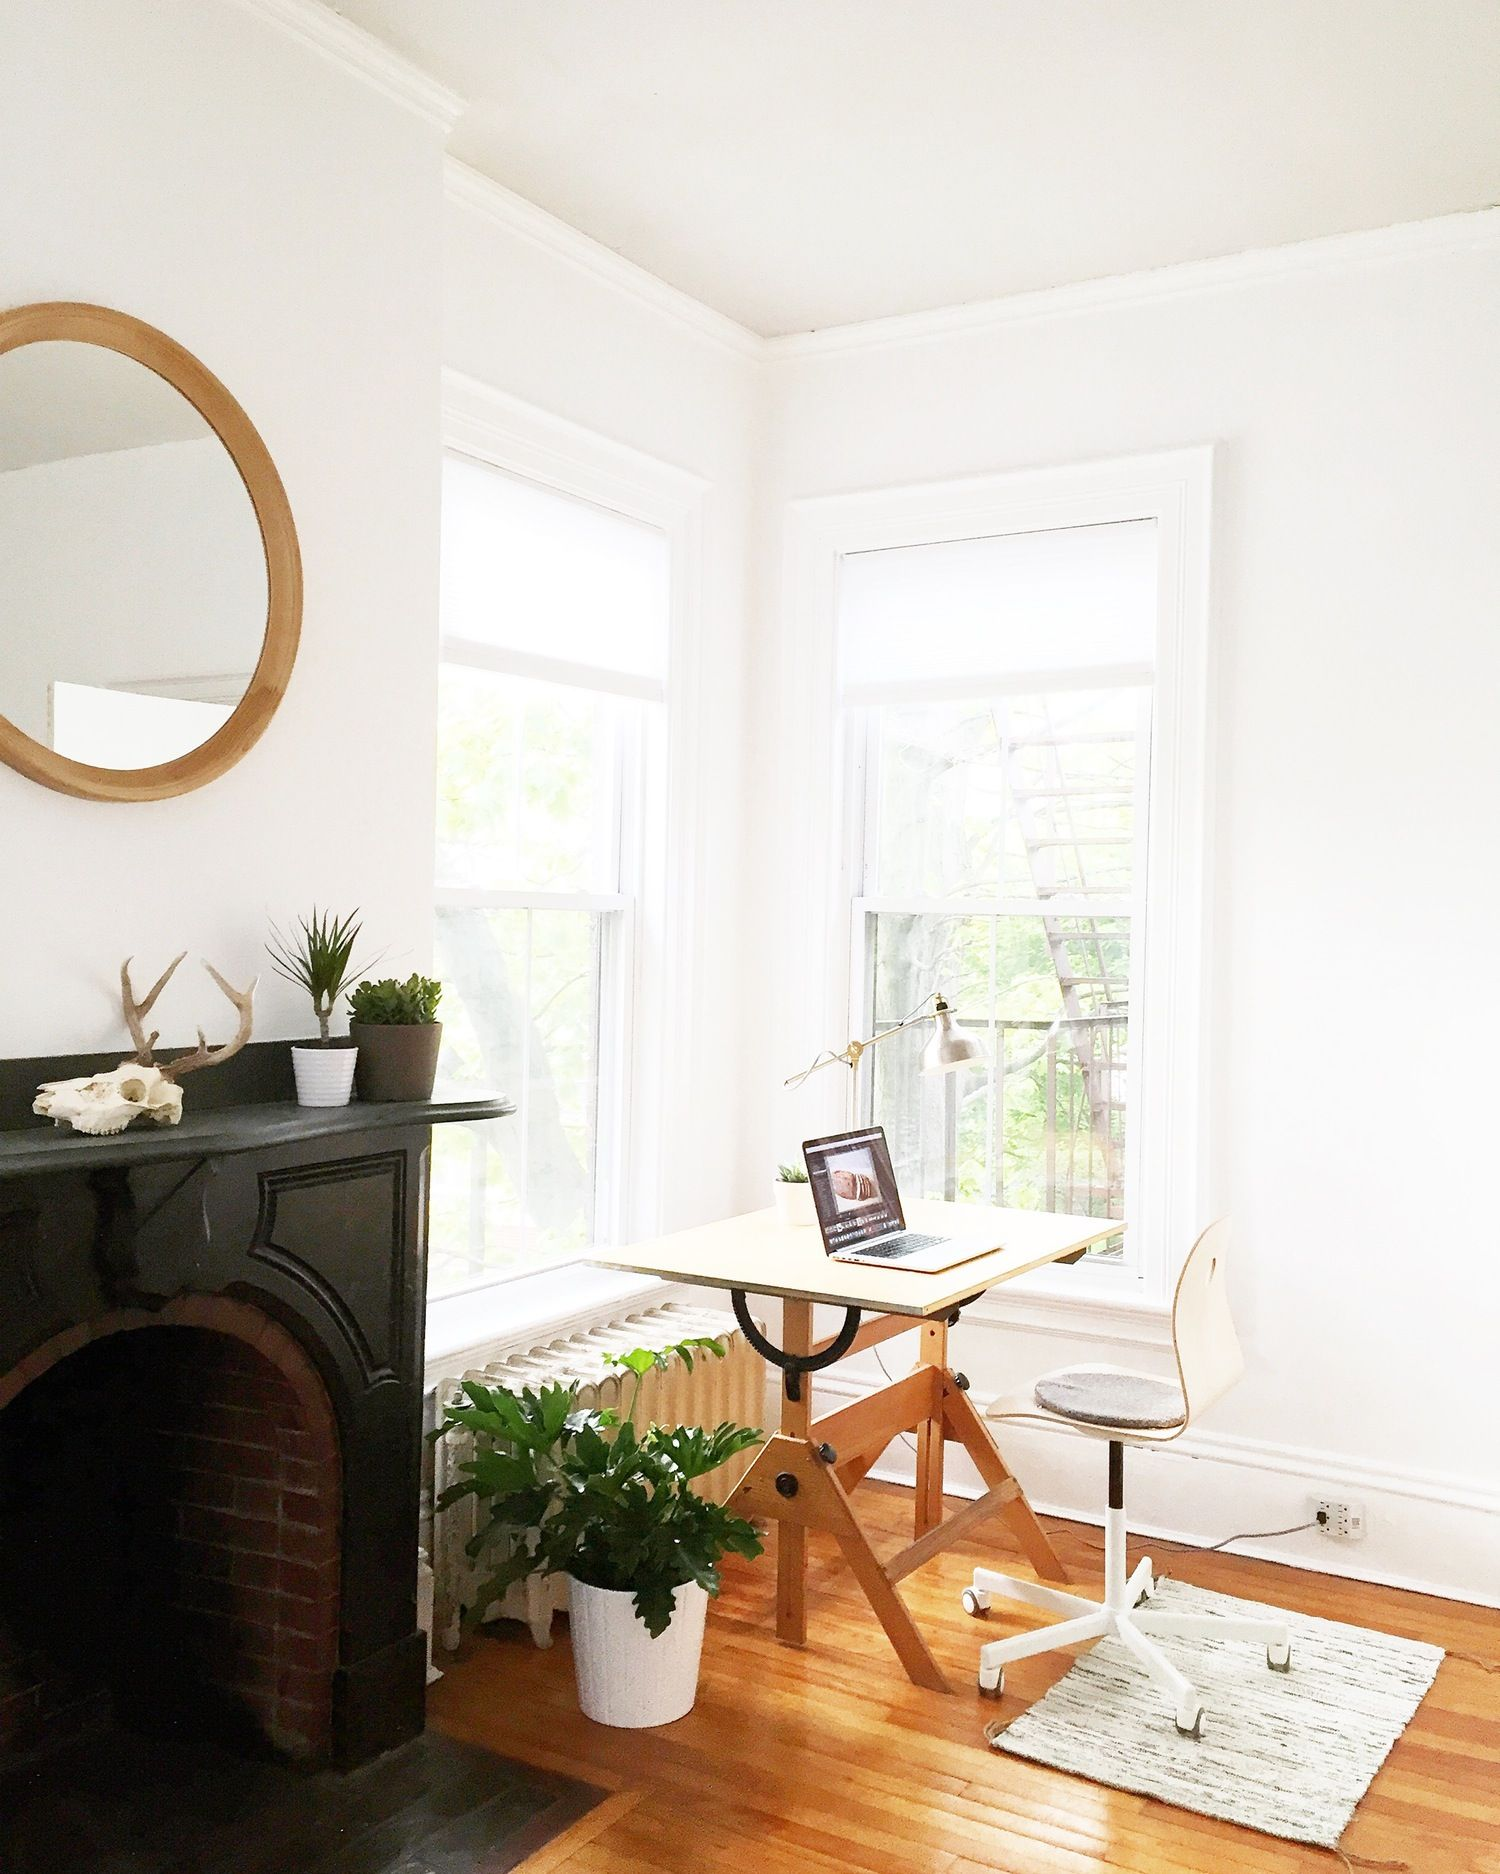 In a 950 square foot space hidden inside of a historic mid-1800s building is the new home of Danny and Lyndsay Gugger. White walls and simple Scandinavian style create a bright and comfortable live and work space ready to inspire you to create the same.